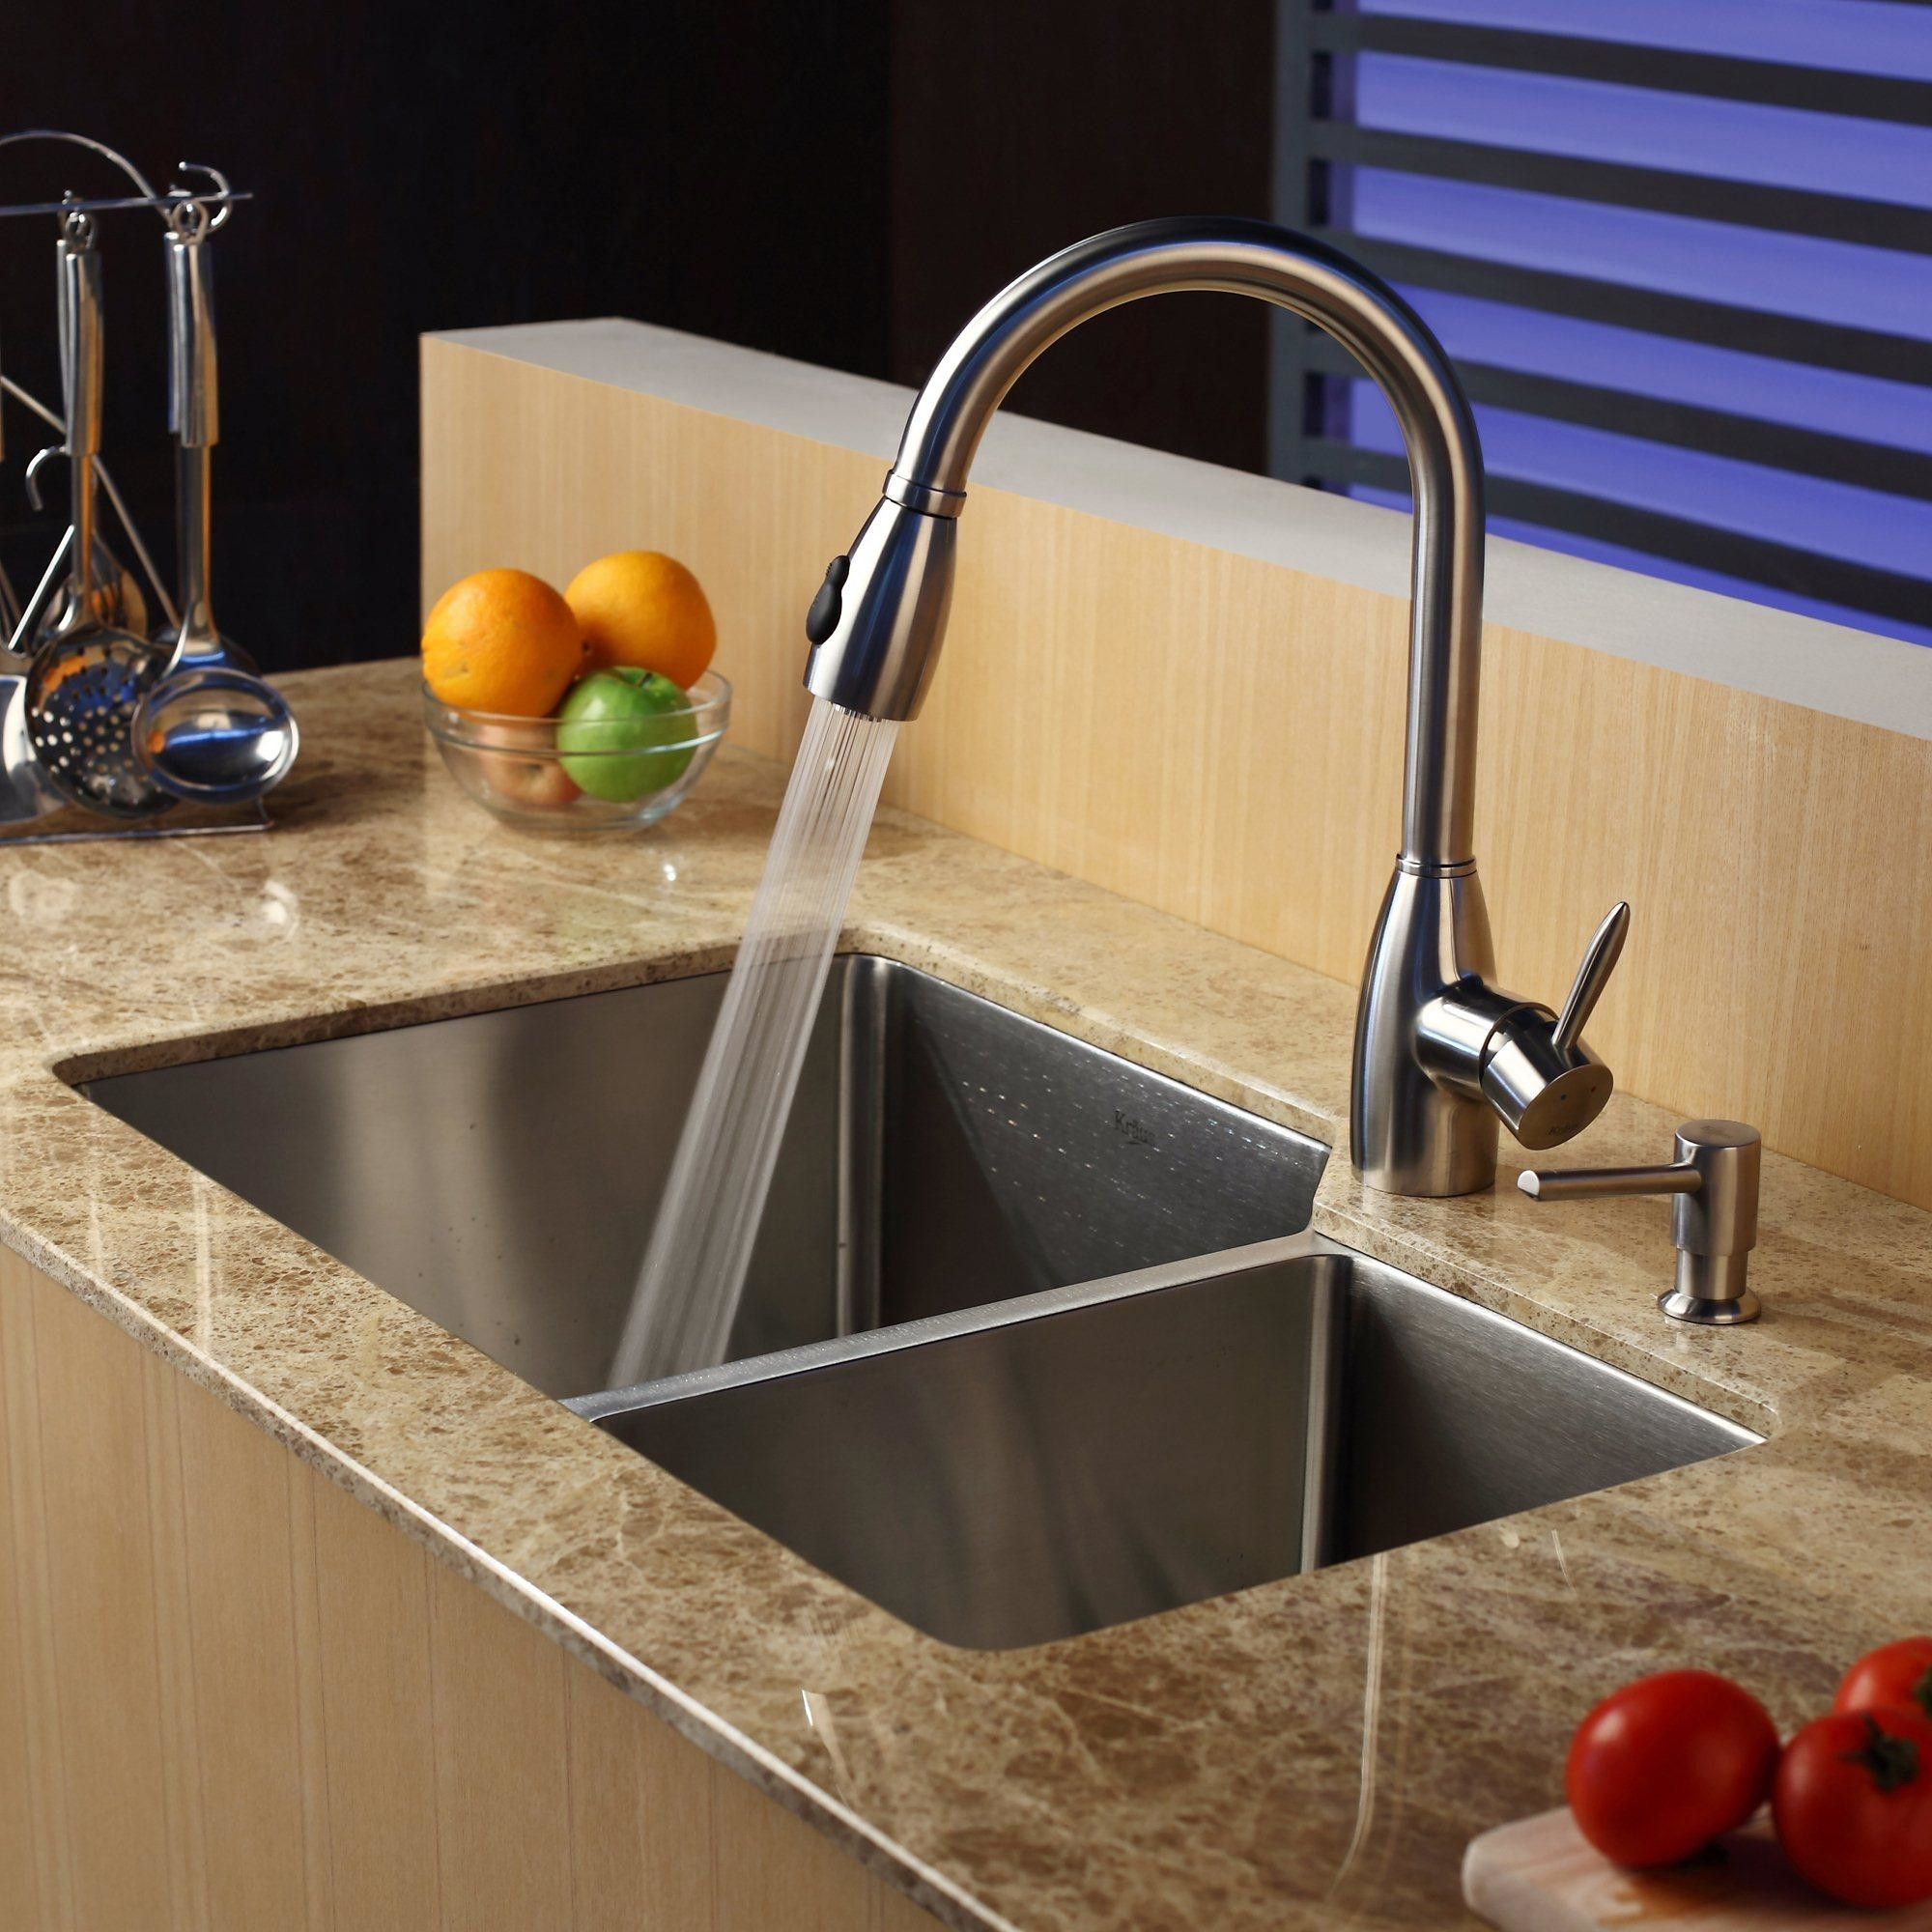 kitchen countertop soap dispenser modern valance installation with lovable sink